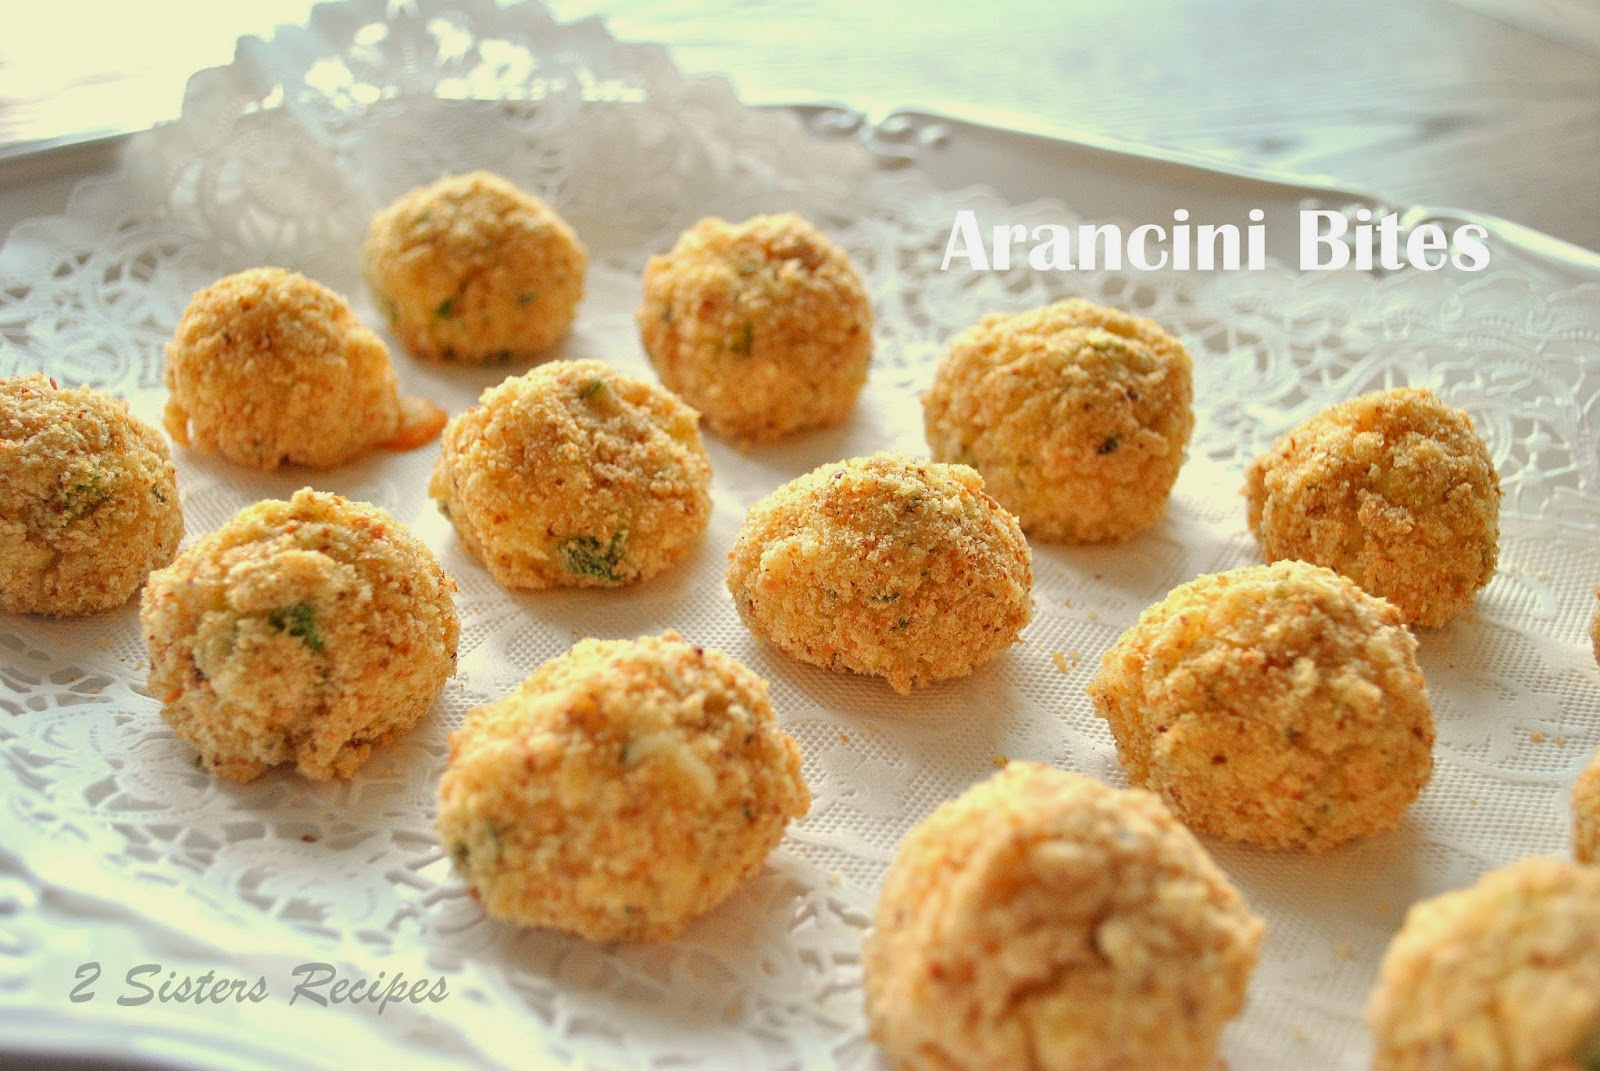 ... Sisters Recipes... by Anna and Liz: Arancini Bites with Fontina Cheese